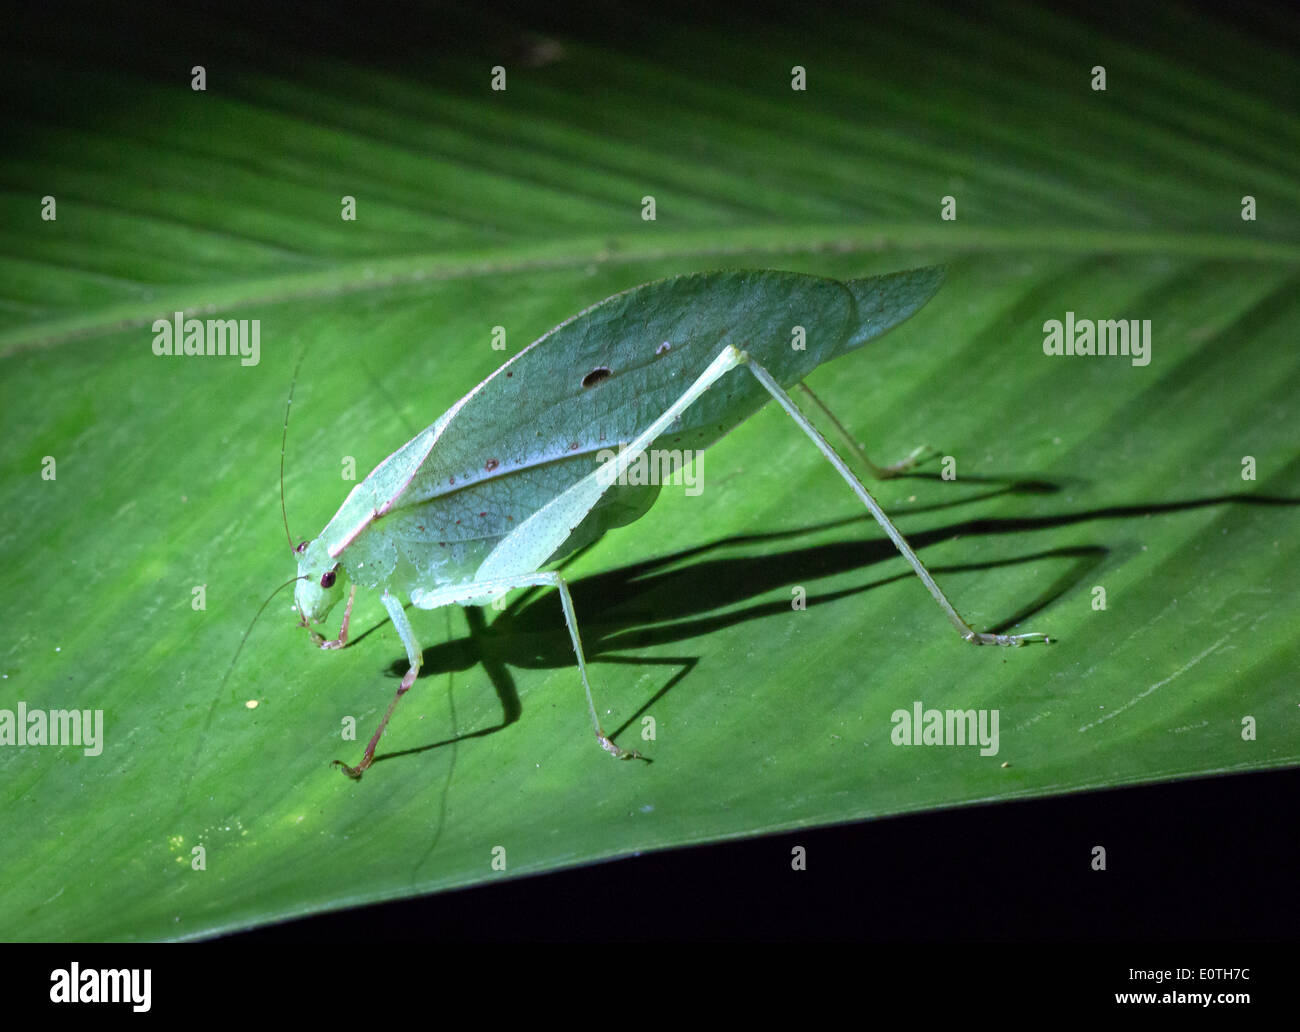 Leaf Grasshopper on a leaf at night in the rainforest of Sarapiqui Costa Rica - Stock Image